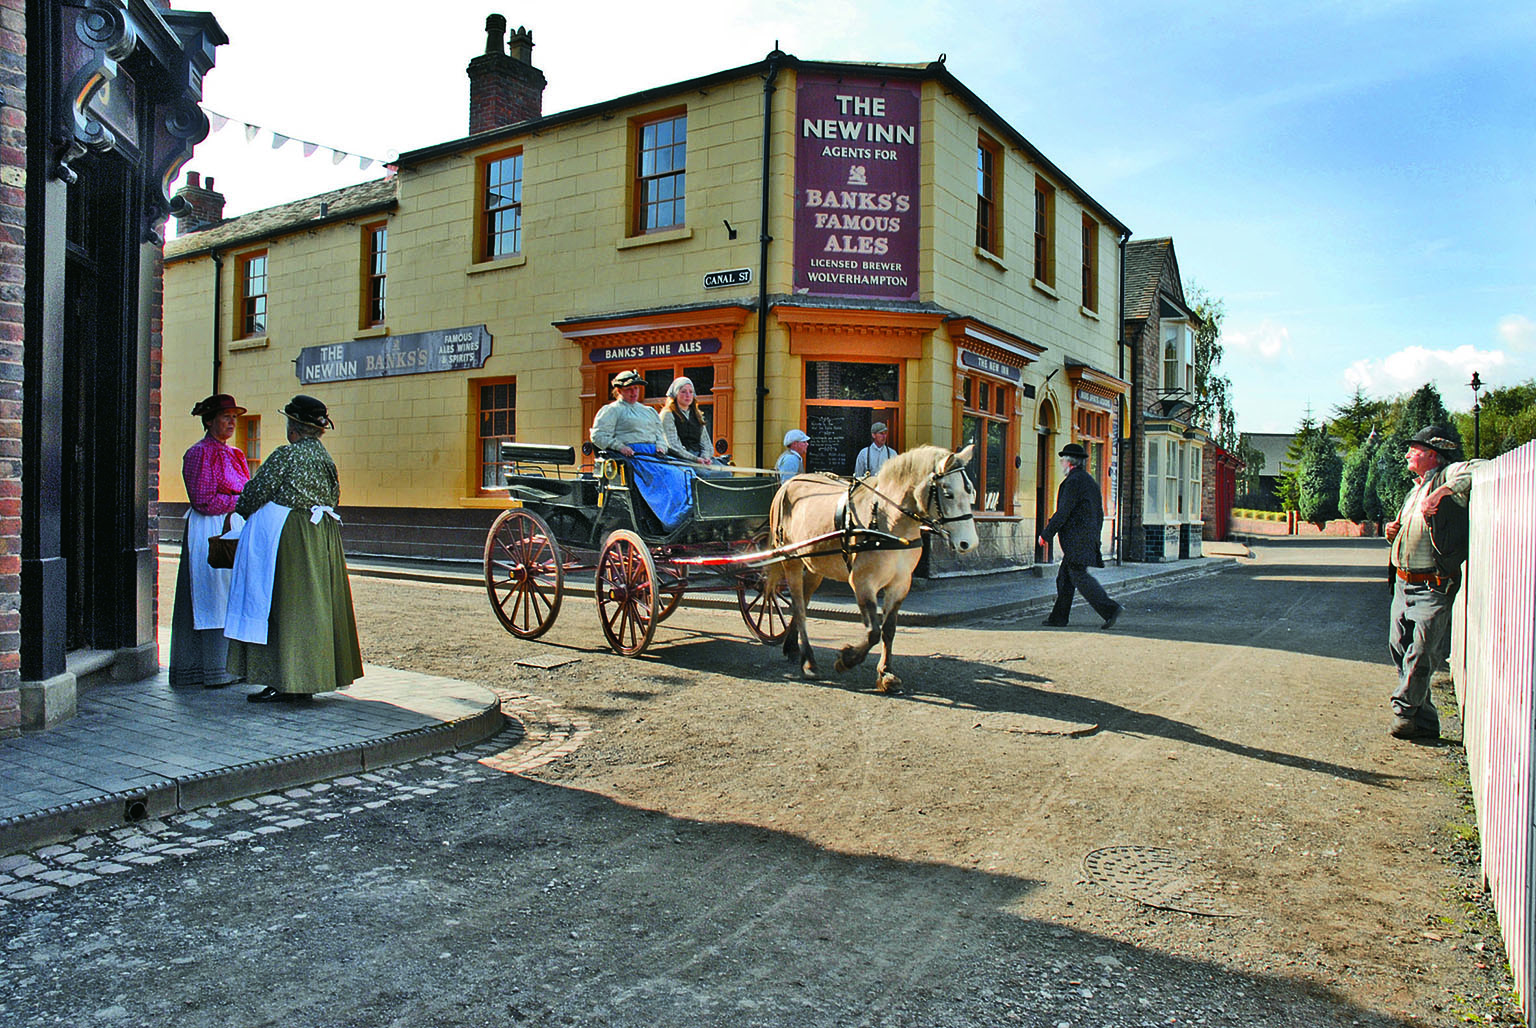 5. Blists Hill Victorian Town, Shropshire. Free with National Art Pass - Ironbridge Gorge Museum Trust